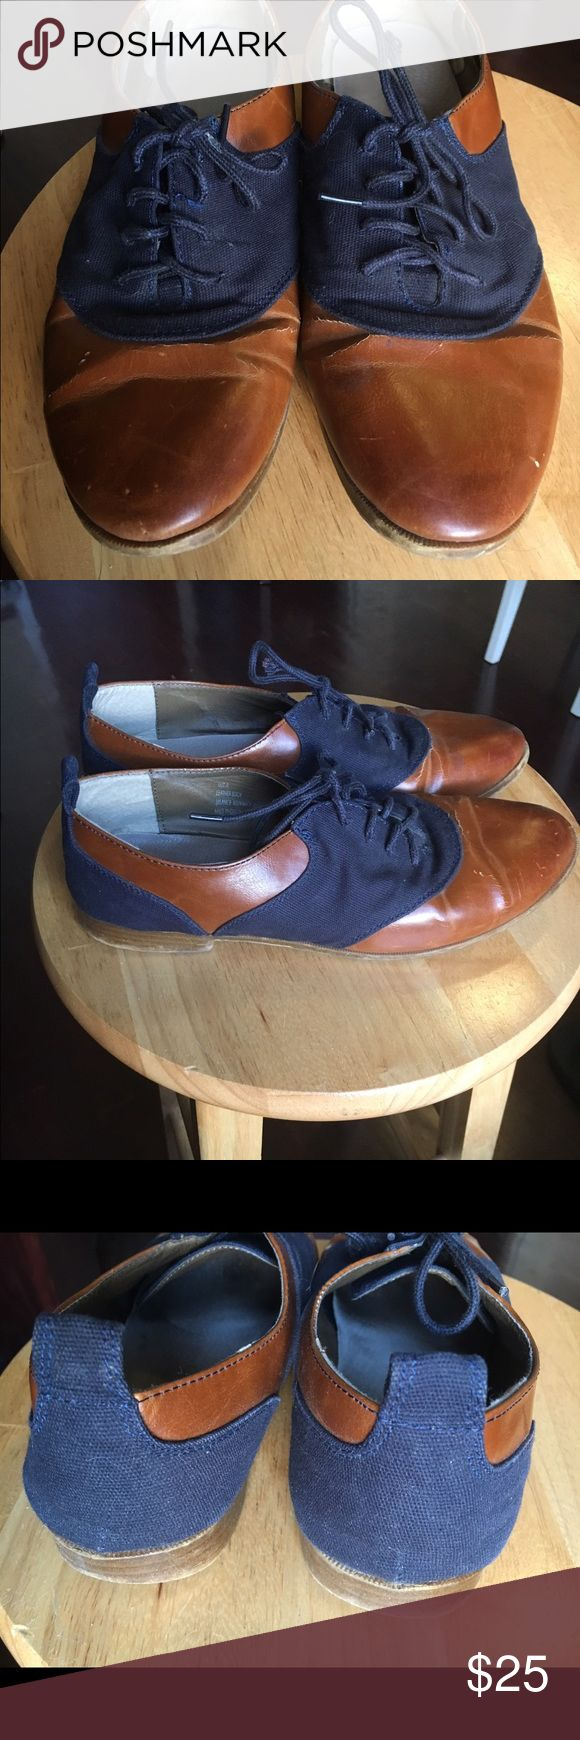 Price drop! Two toned Oxford shoes Two tone Oxford shoes. Gently worn heels, some scuffs on the external leather. Restricted Shoes Flats & Loafers